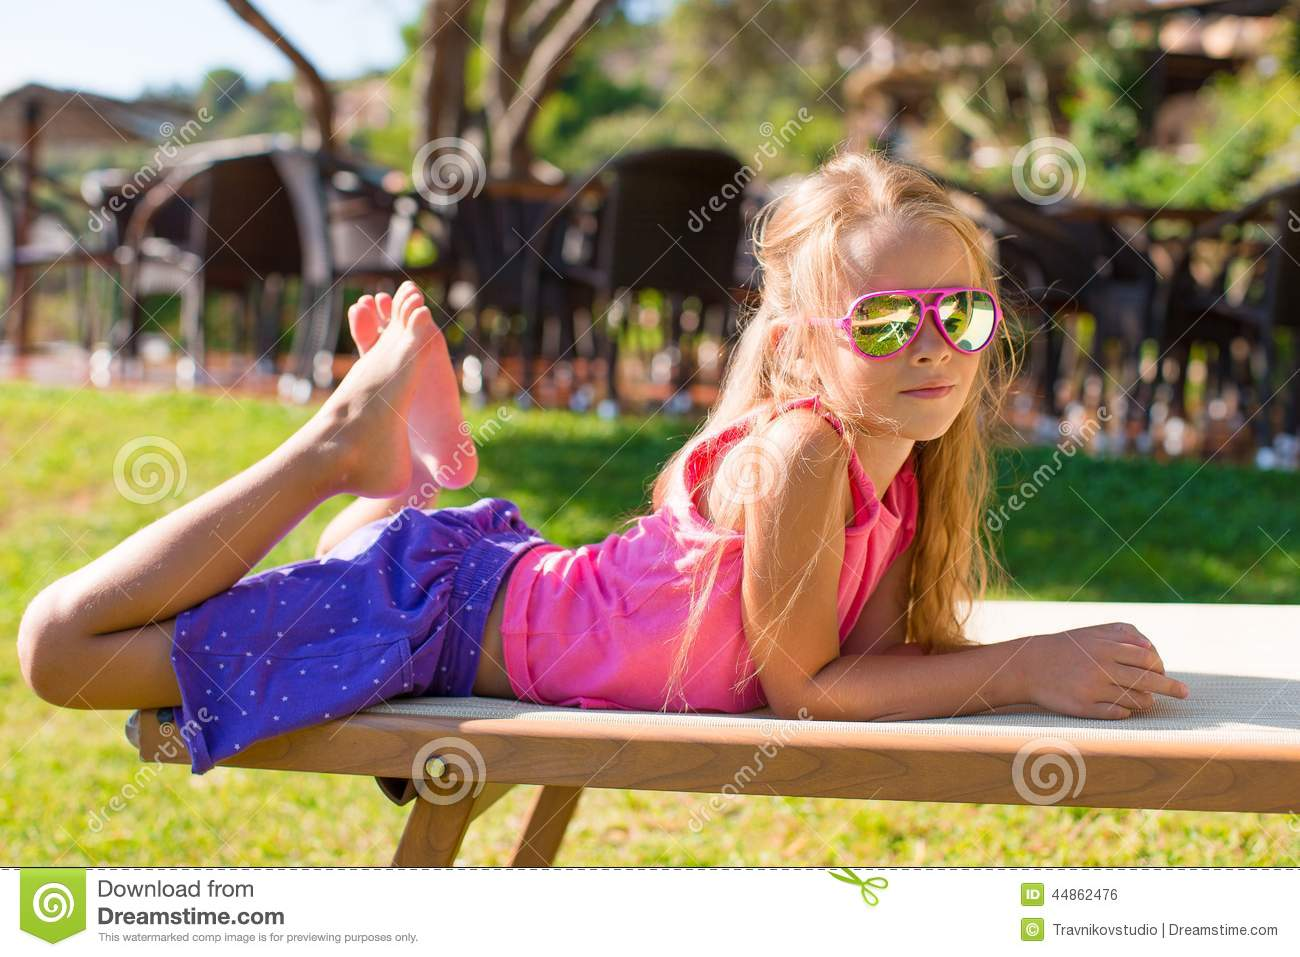 Portrait Of Adorable Little Girl Outdoors Stock Photo - Image: 44862476